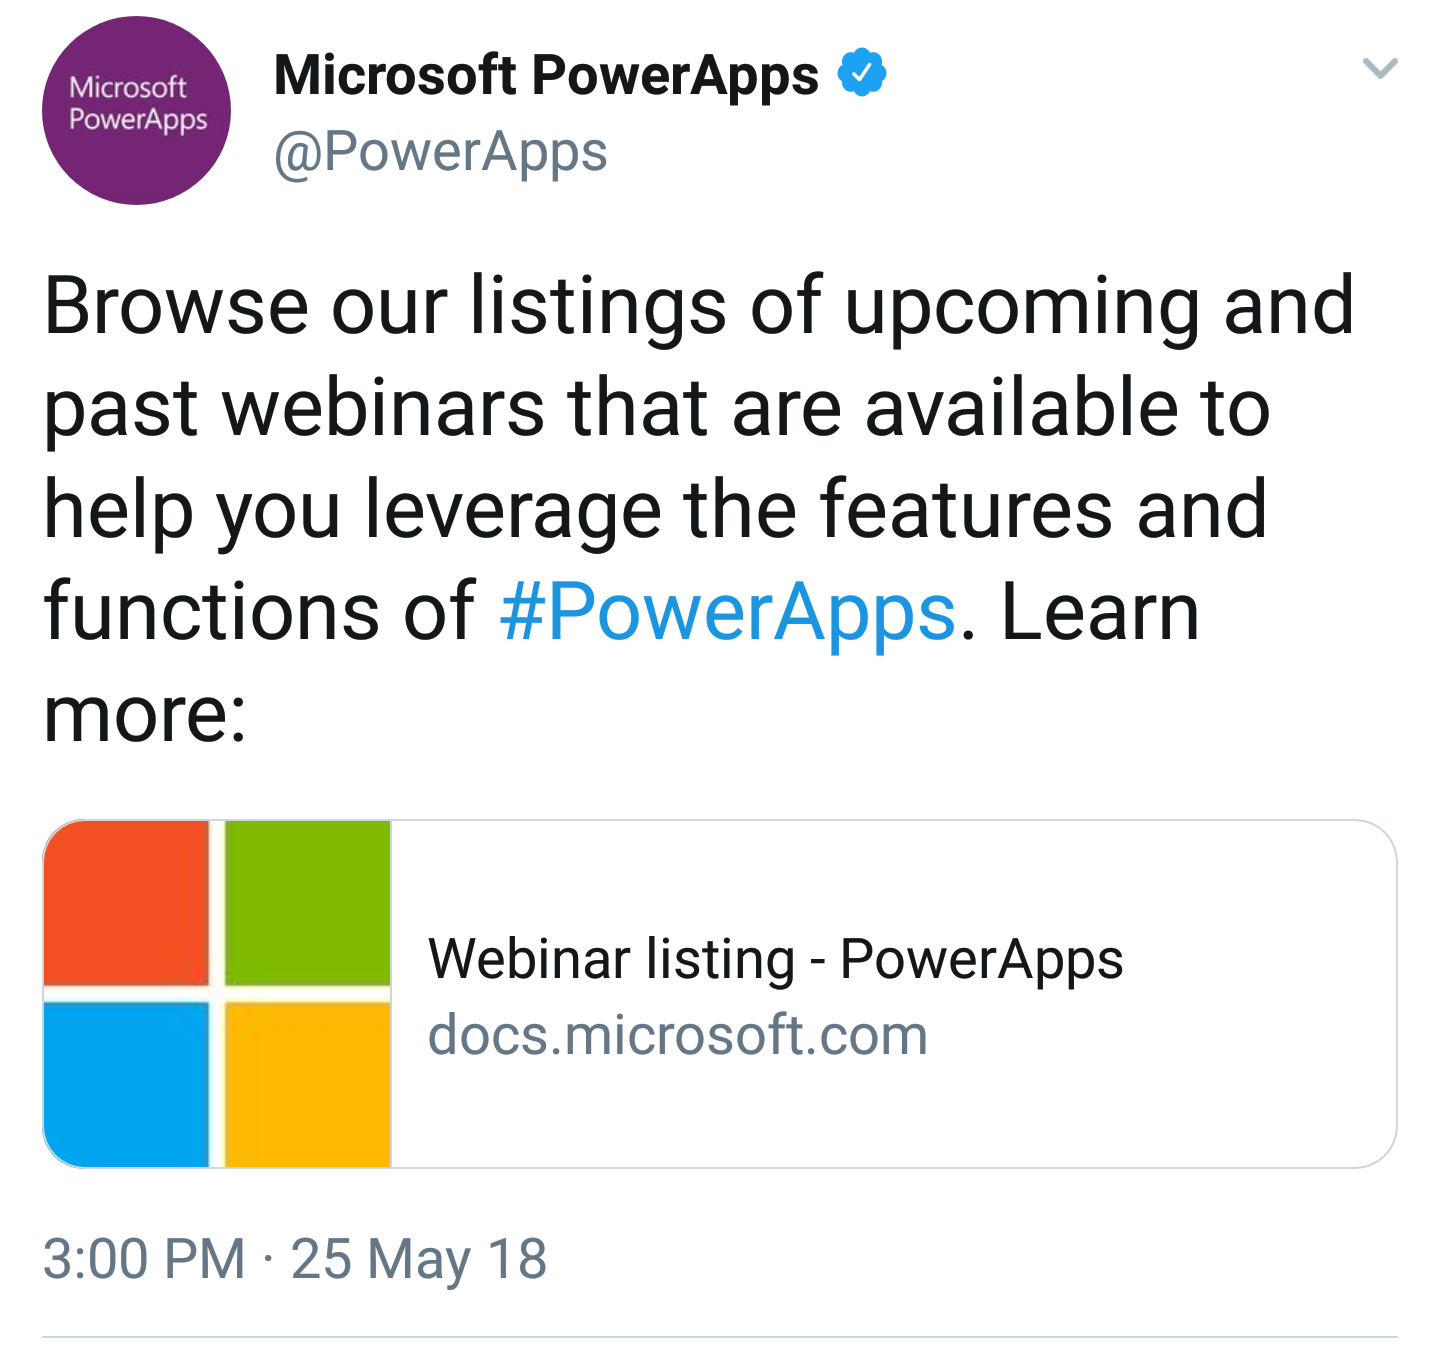 PowerApps Webinar Listing - Learn something new today. (Microsoft)